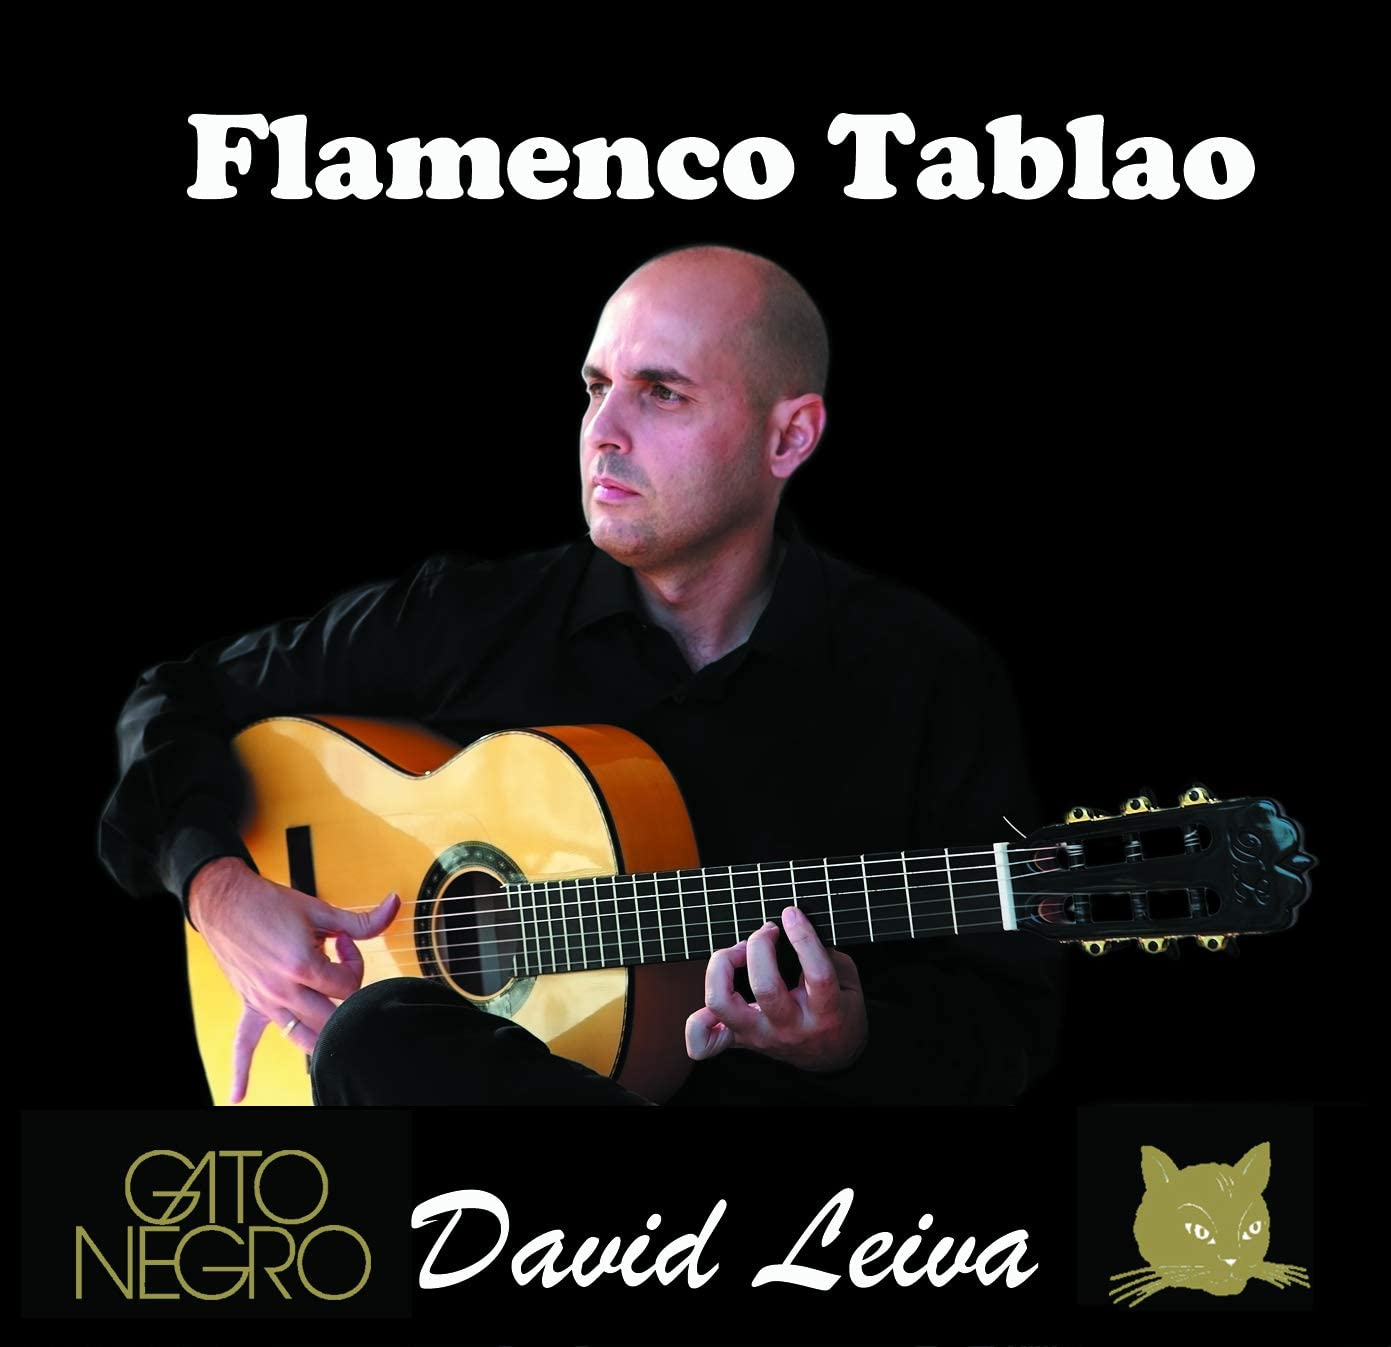 Cuerdas Guitarra Clásica Flamenco Tablao Gato Negro: Amazon.es ...